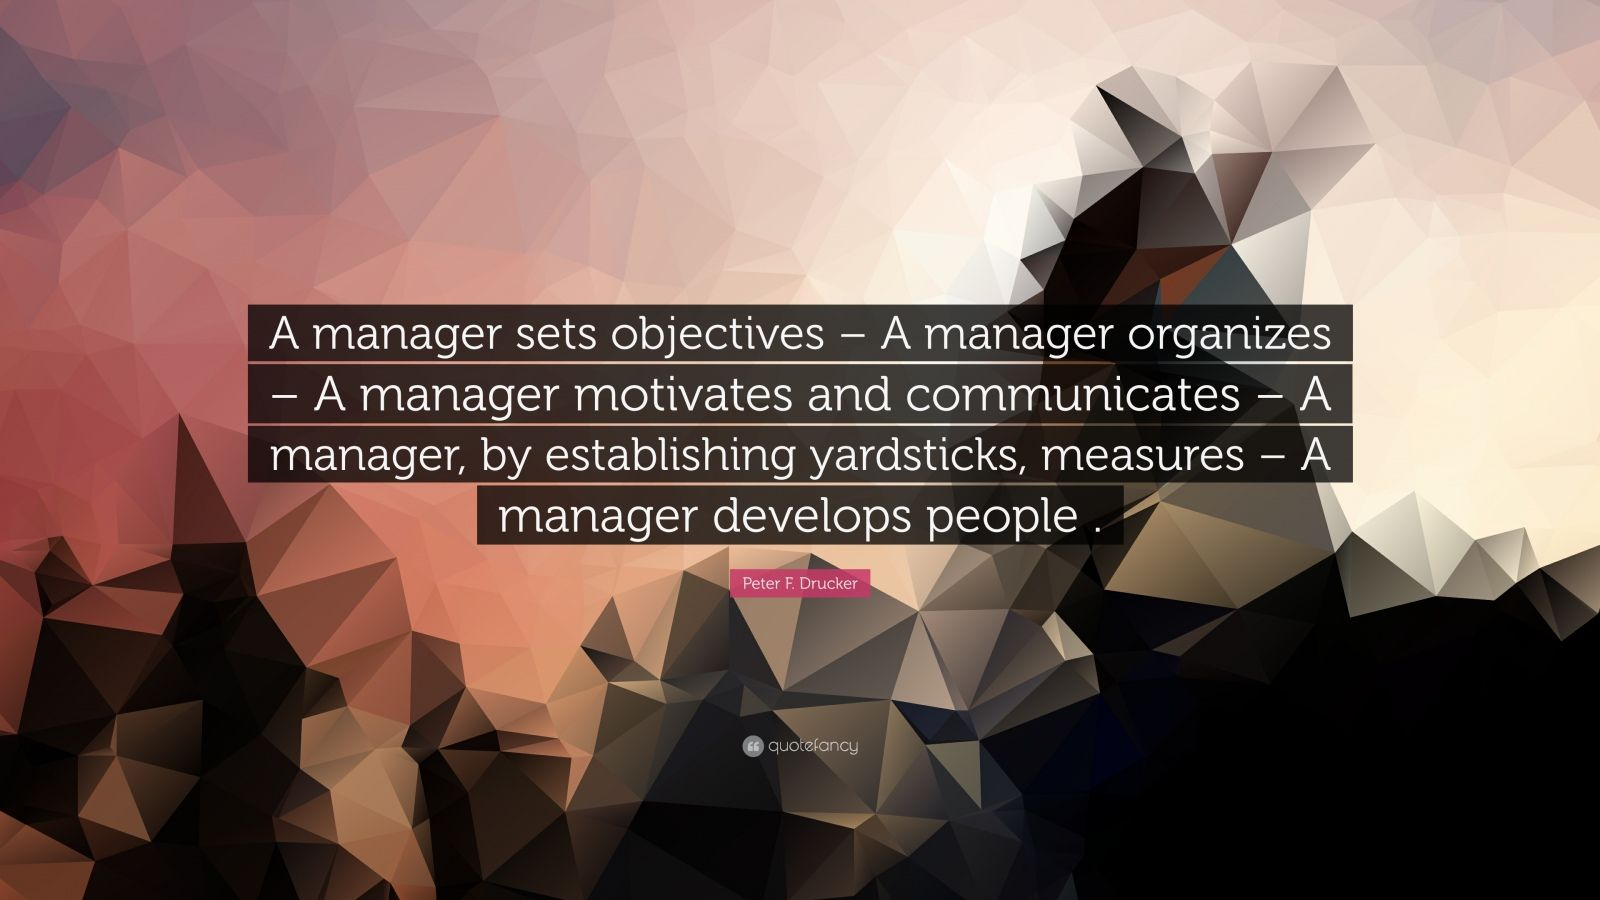 """Peter F. Drucker Quote: """"A manager sets objectives – A manager organizes – A manager motivates and communicates – A manager, by establishing yardsticks, measures – A manager develops people ."""""""